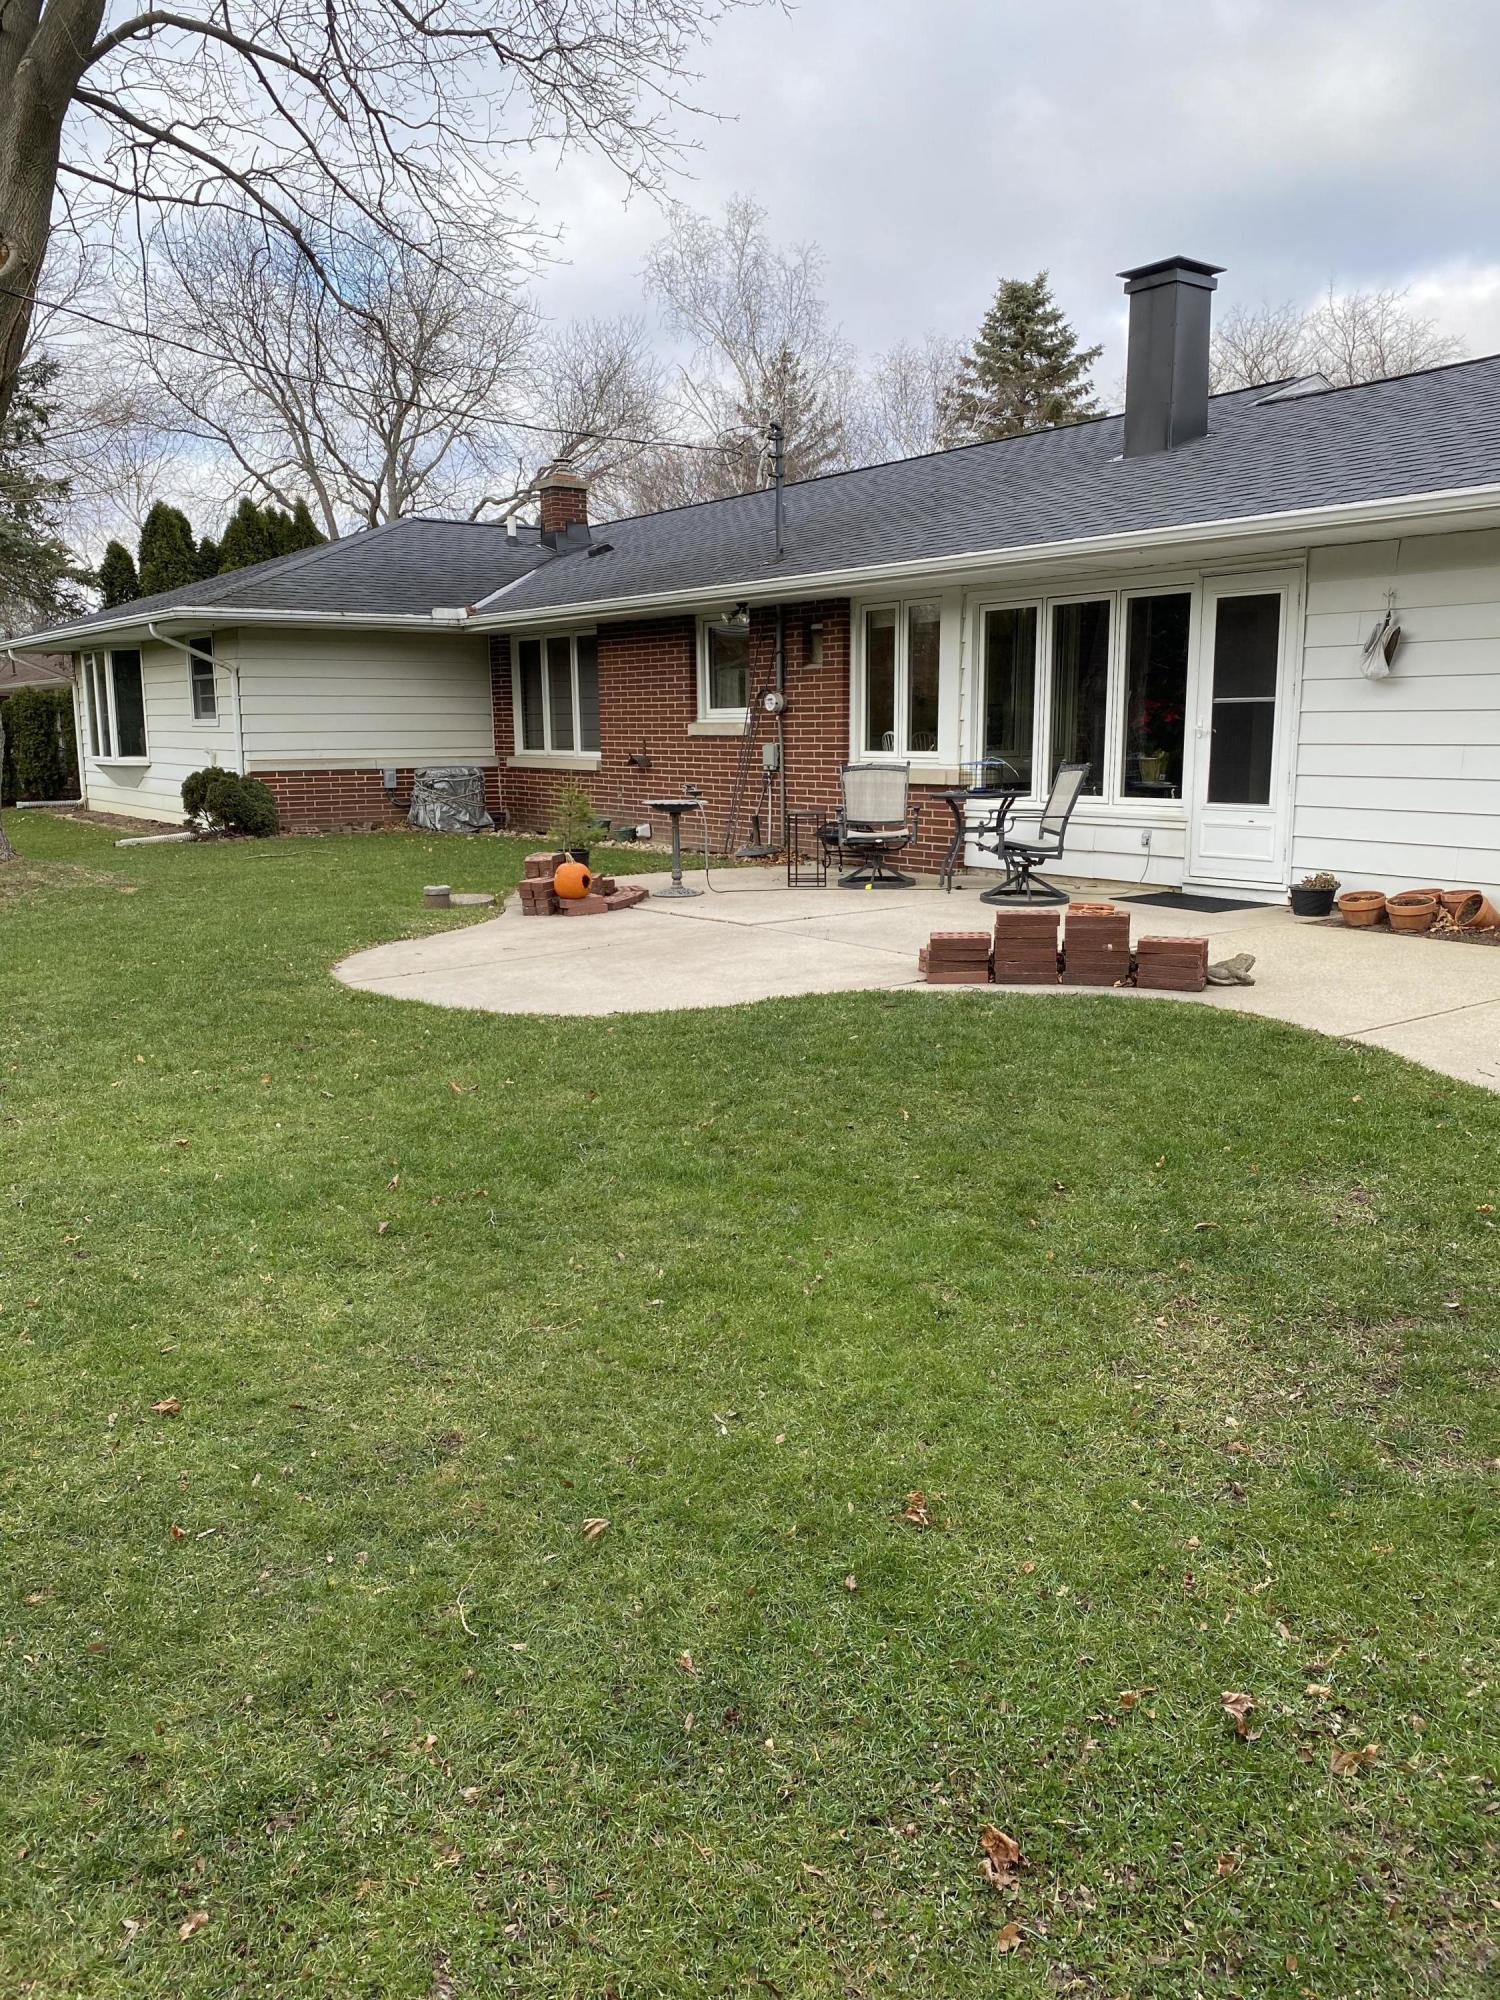 311 Heidel Rd, Thiensville, Wisconsin 53092, 3 Bedrooms Bedrooms, 7 Rooms Rooms,2 BathroomsBathrooms,Single-family,For Sale,Heidel Rd,1722956